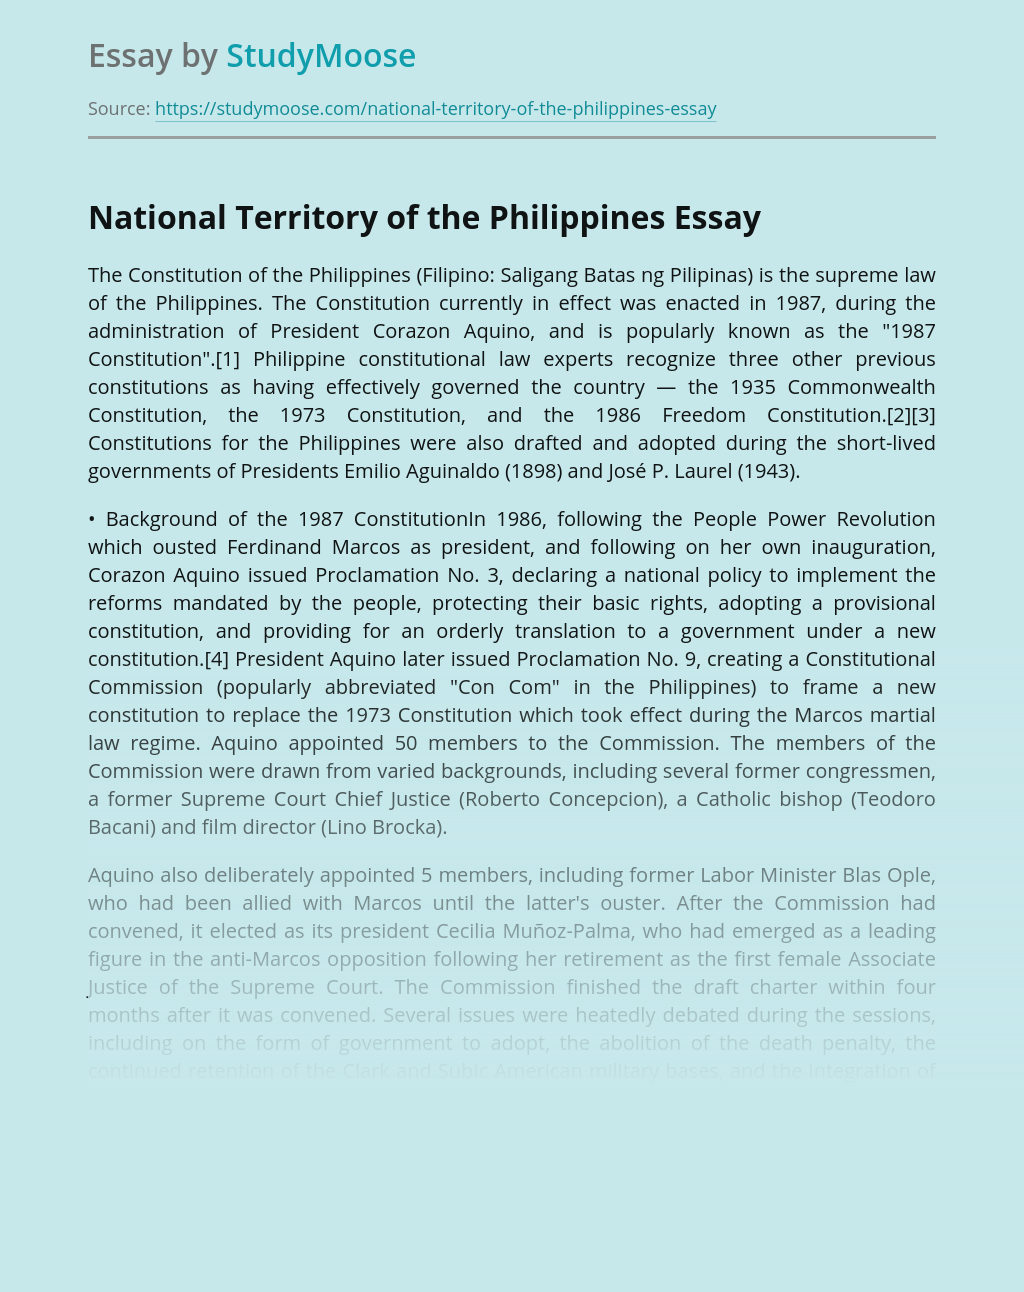 National Territory of the Philippines